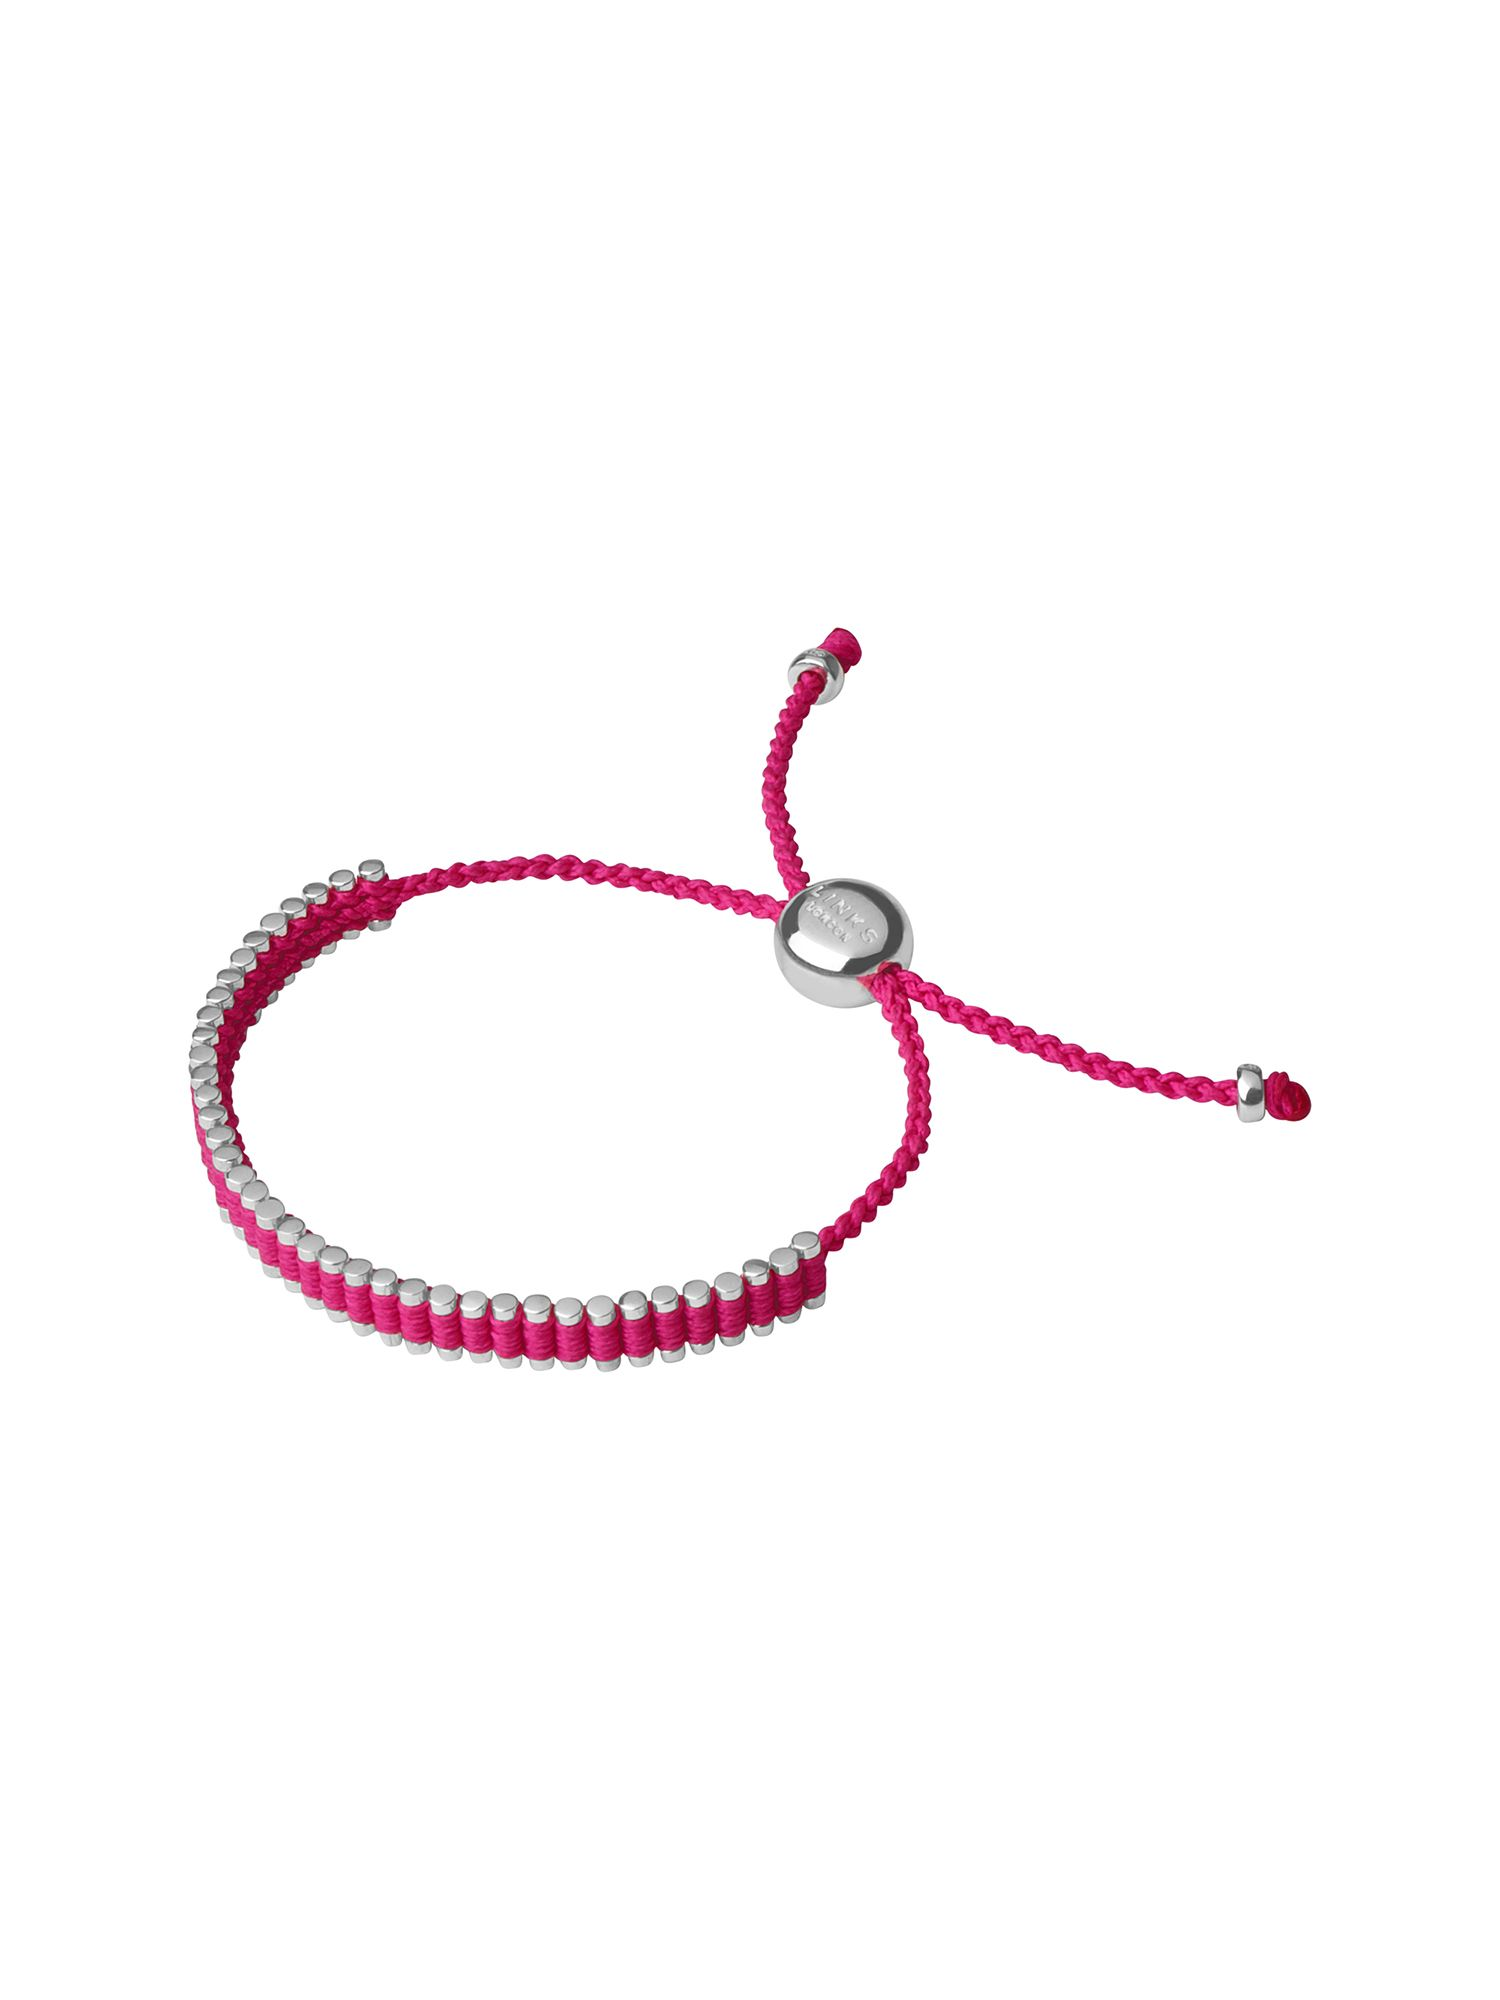 Mini friendship bracelet